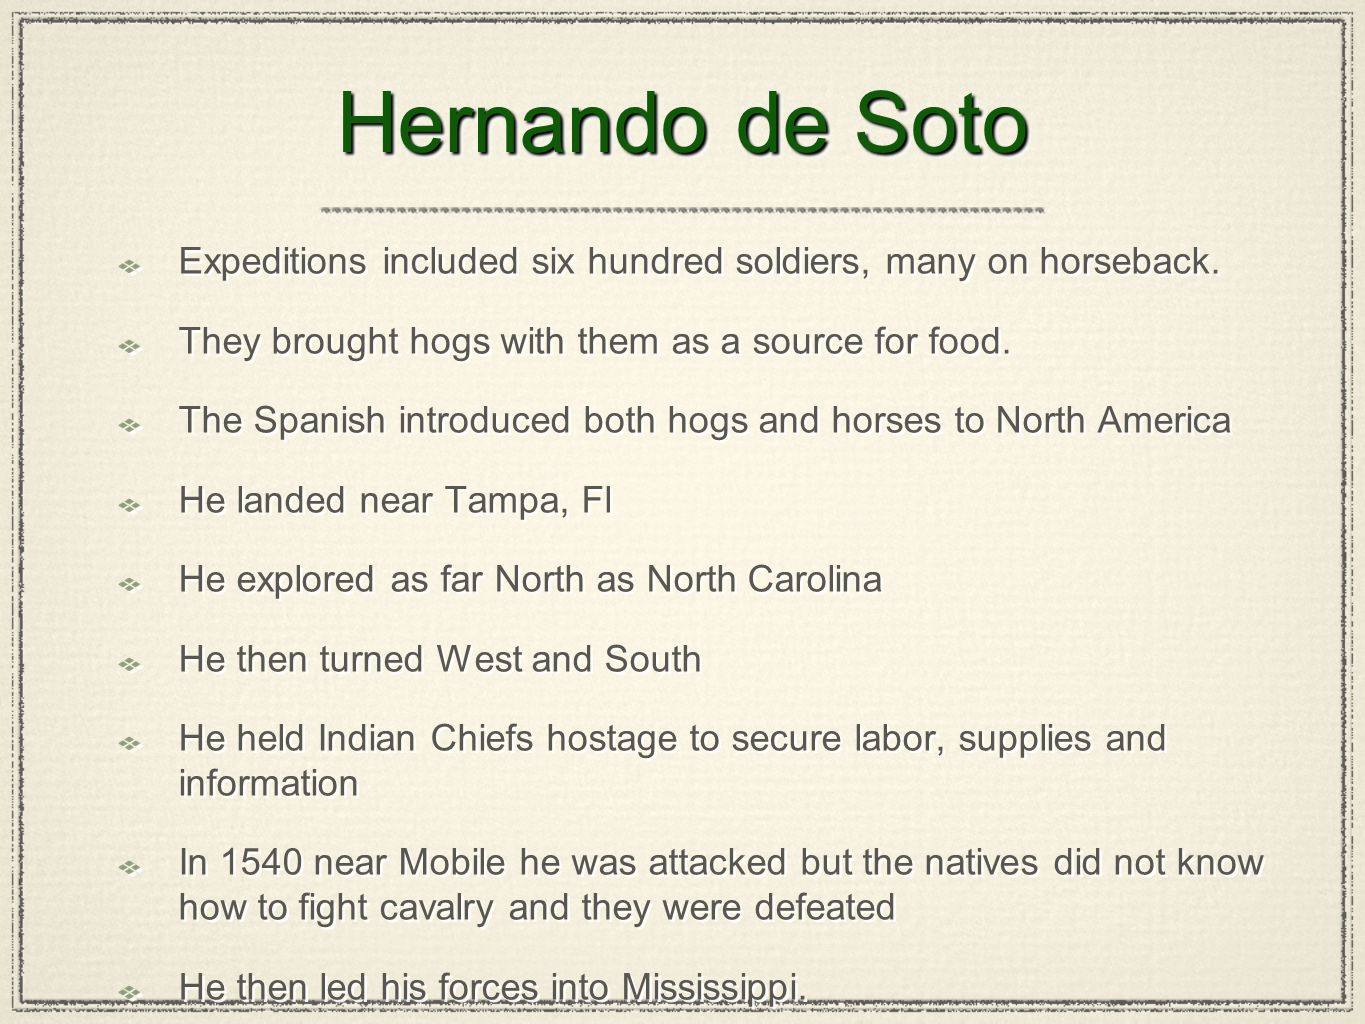 Hernando de Soto Expeditions included six hundred soldiers, many on horseback. They brought hogs with them as a source for food.